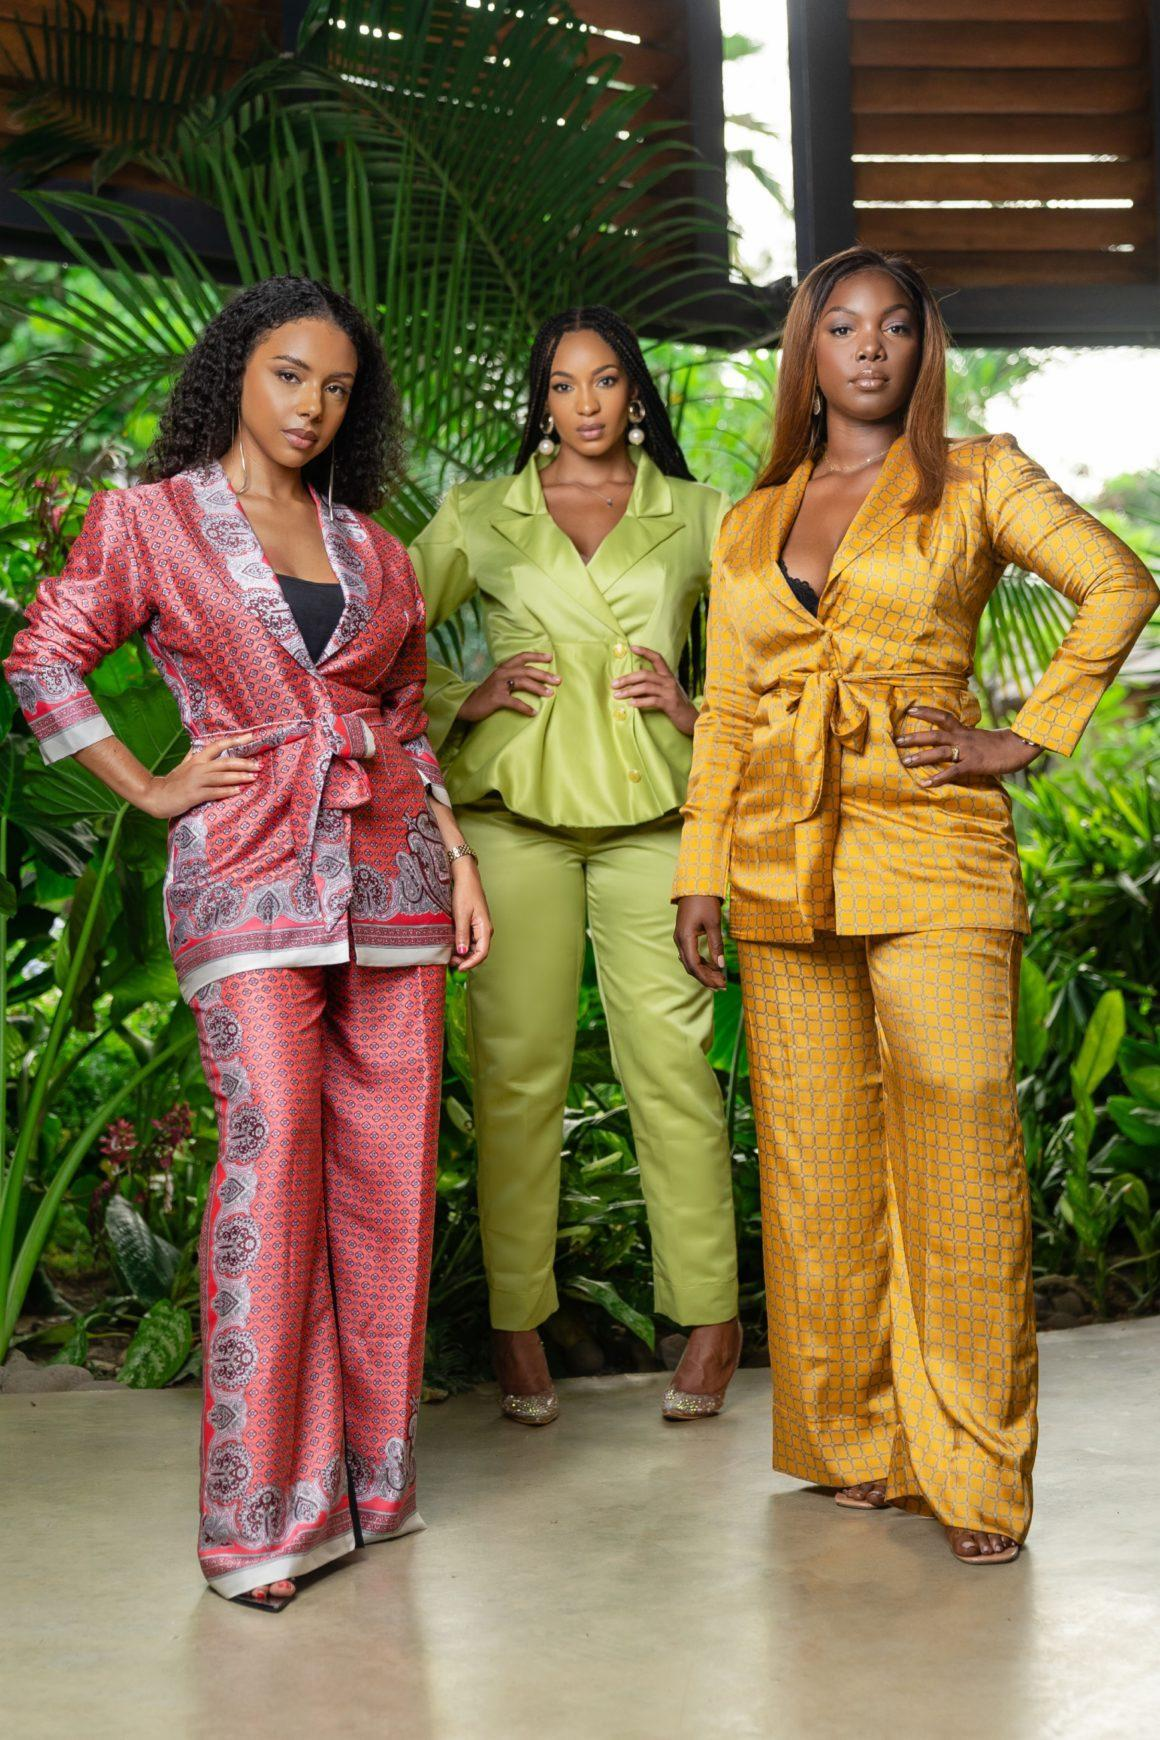 Bold Colors, Lines, and Empowerment: How Jellabiya is Revolutionizing Modern-Day Modest Fashion